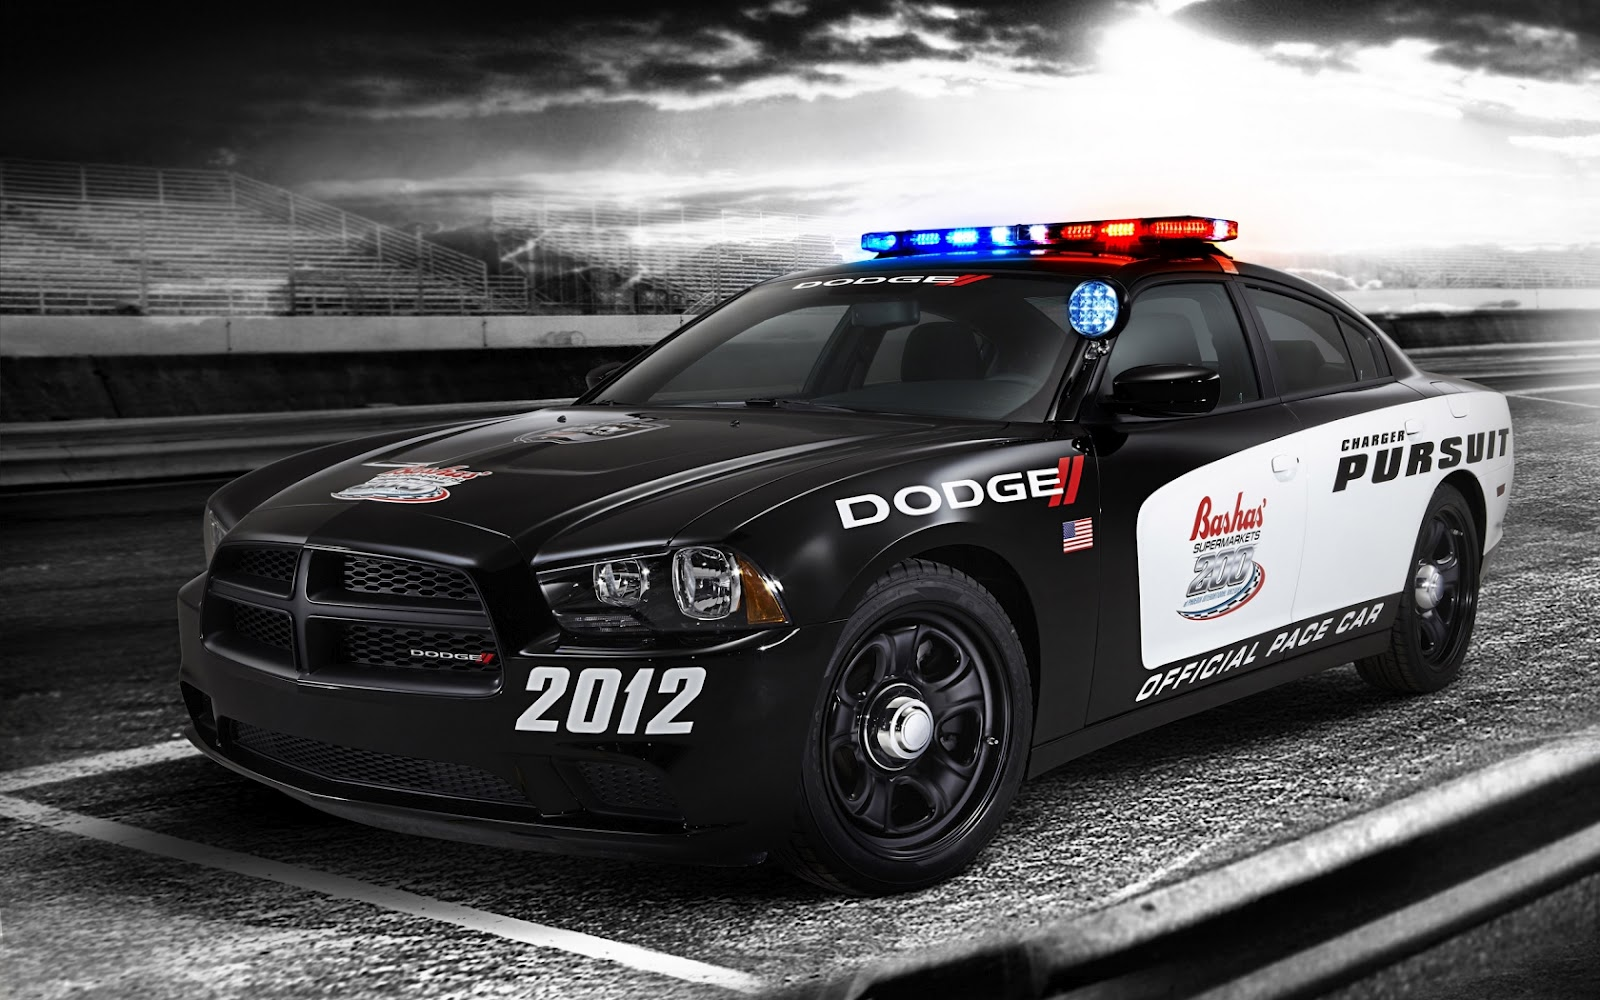 US Police Car Free Mobile Phone Wallpapers 378 #11638 Wallpaper | Cool ...